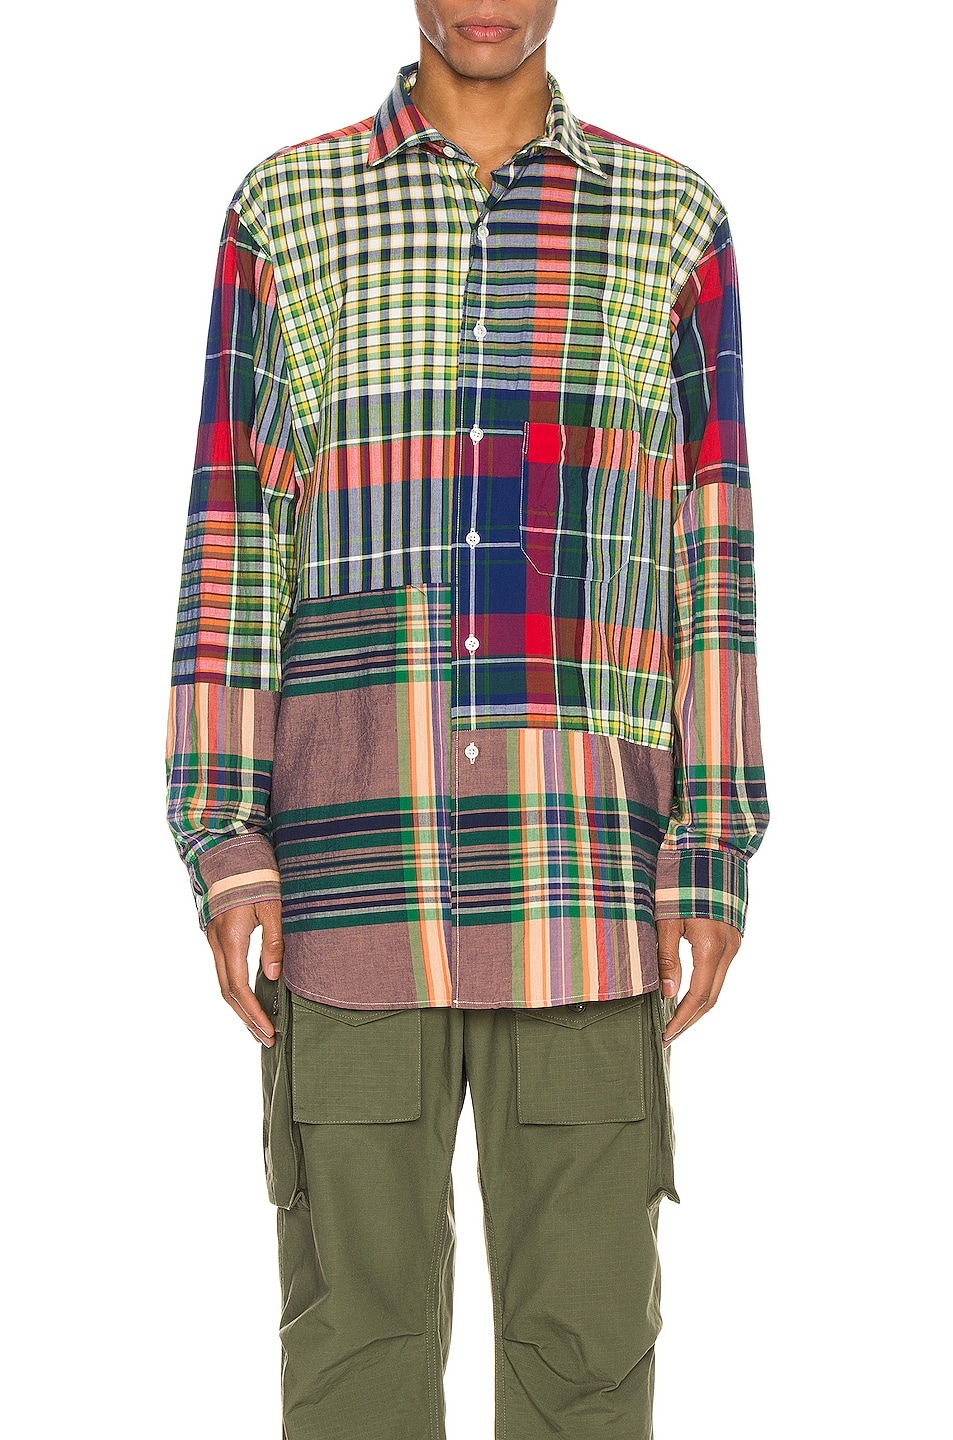 Image 1 of Engineered Garments Spread Collar Shirt in Red & Blue & Green Big Madras Plaid